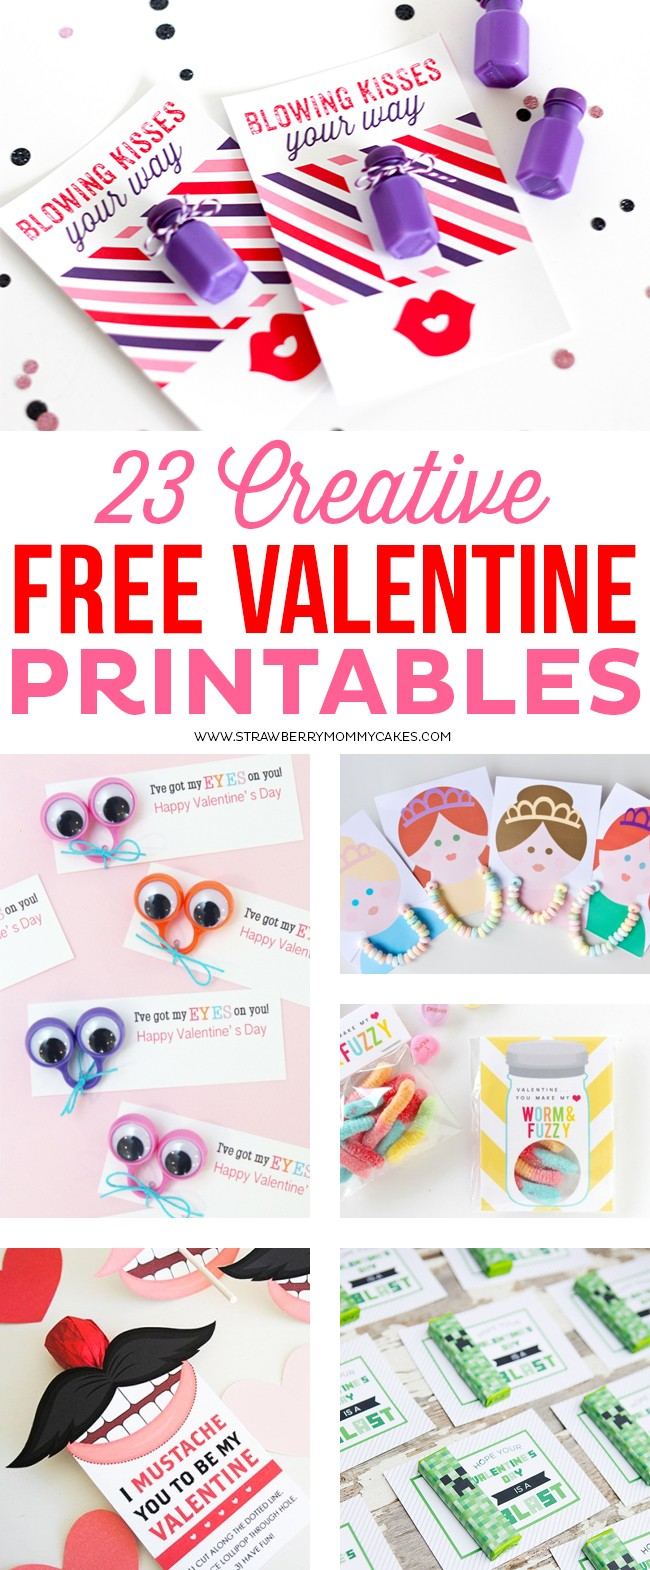 23 Creative and FREE Valentine Printables